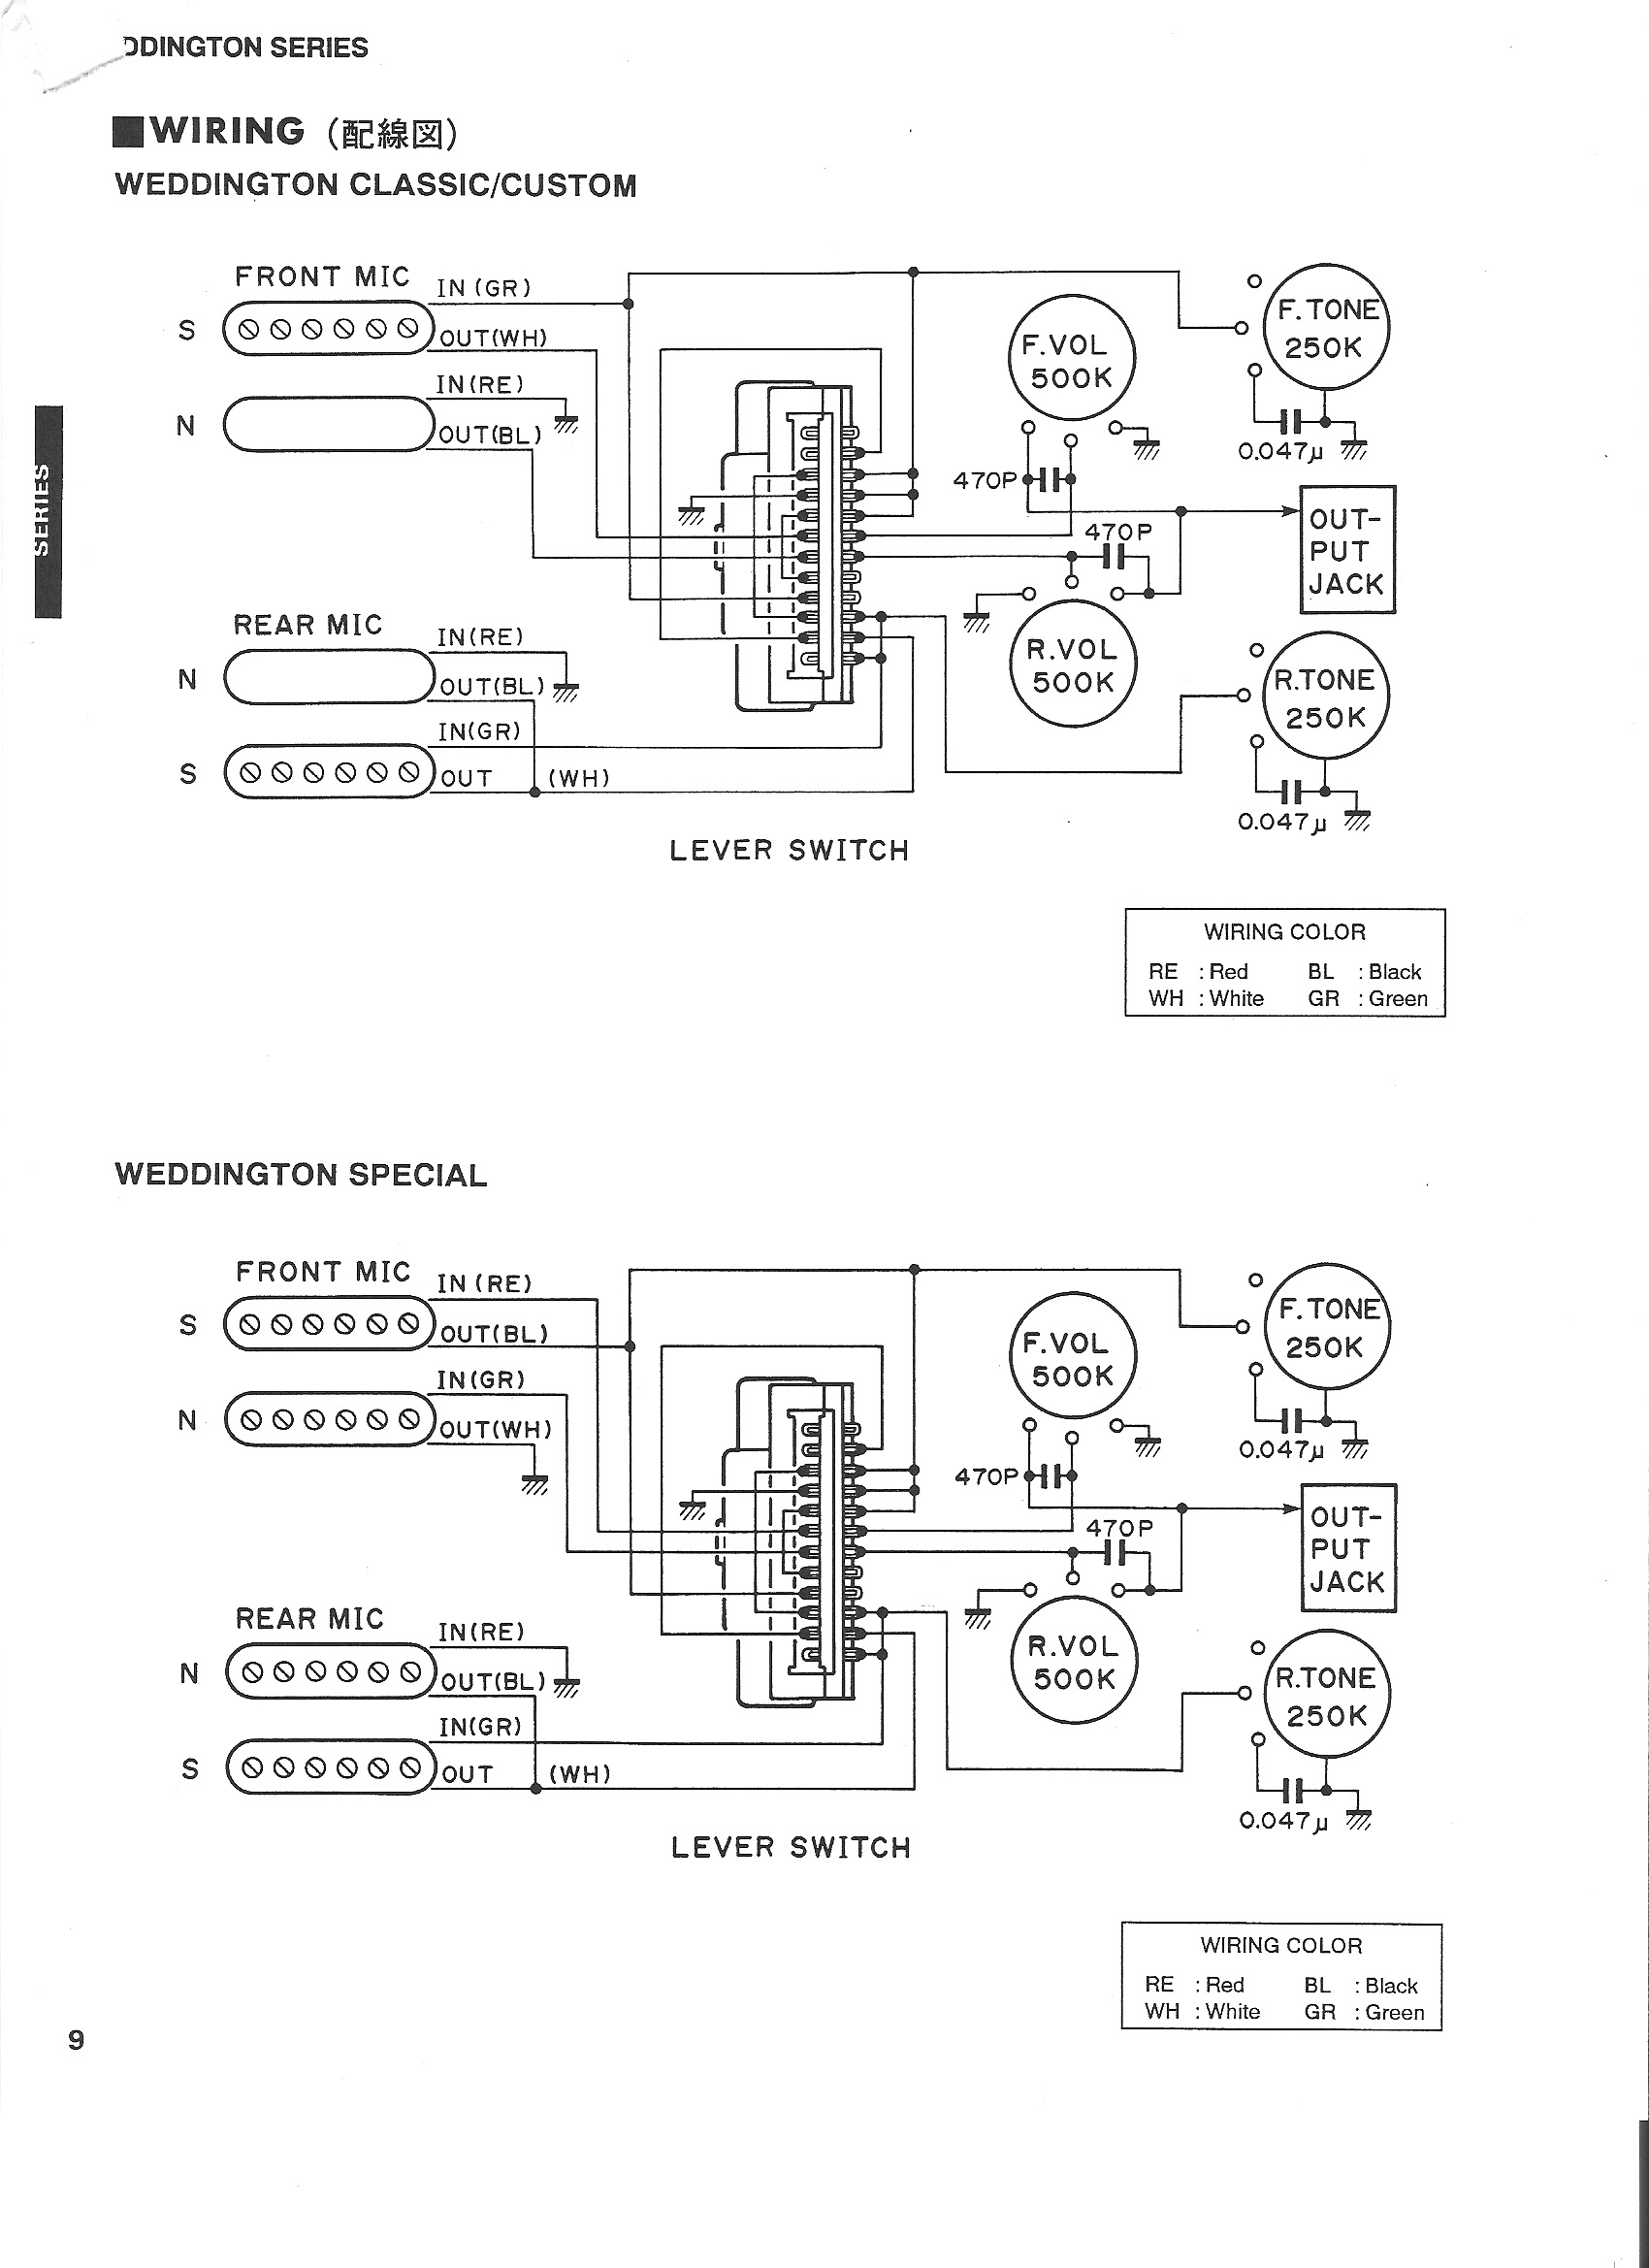 bass guitar wiring diagram rv hot water heater ibanez electric harness get free image about